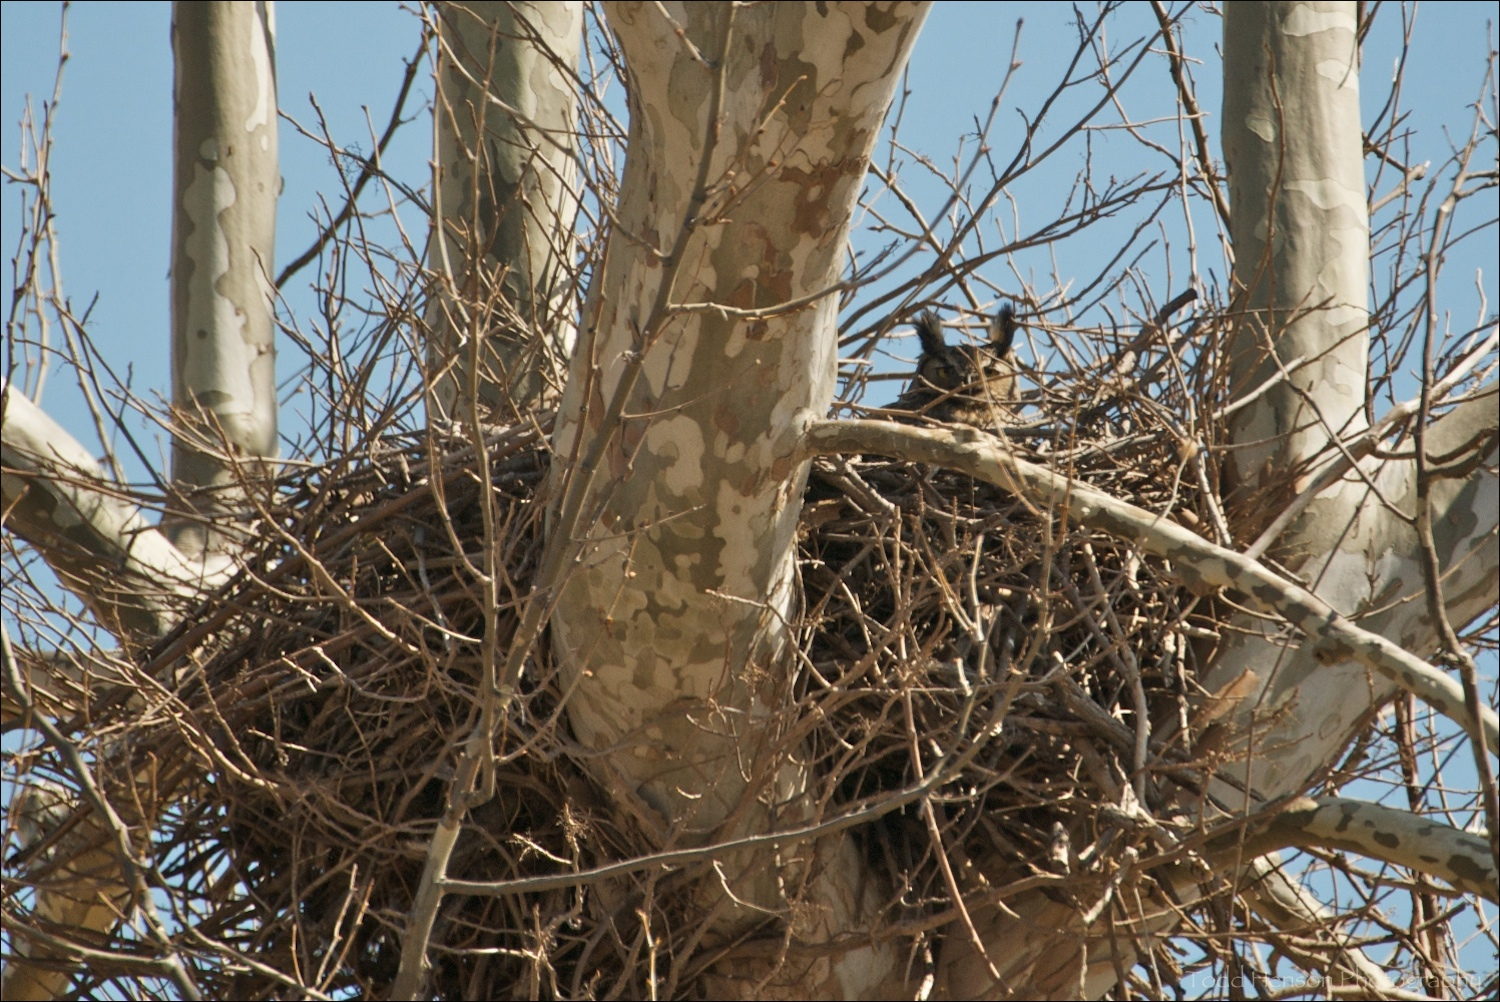 Adult Great Horned Owl in nest. March 20, 2010